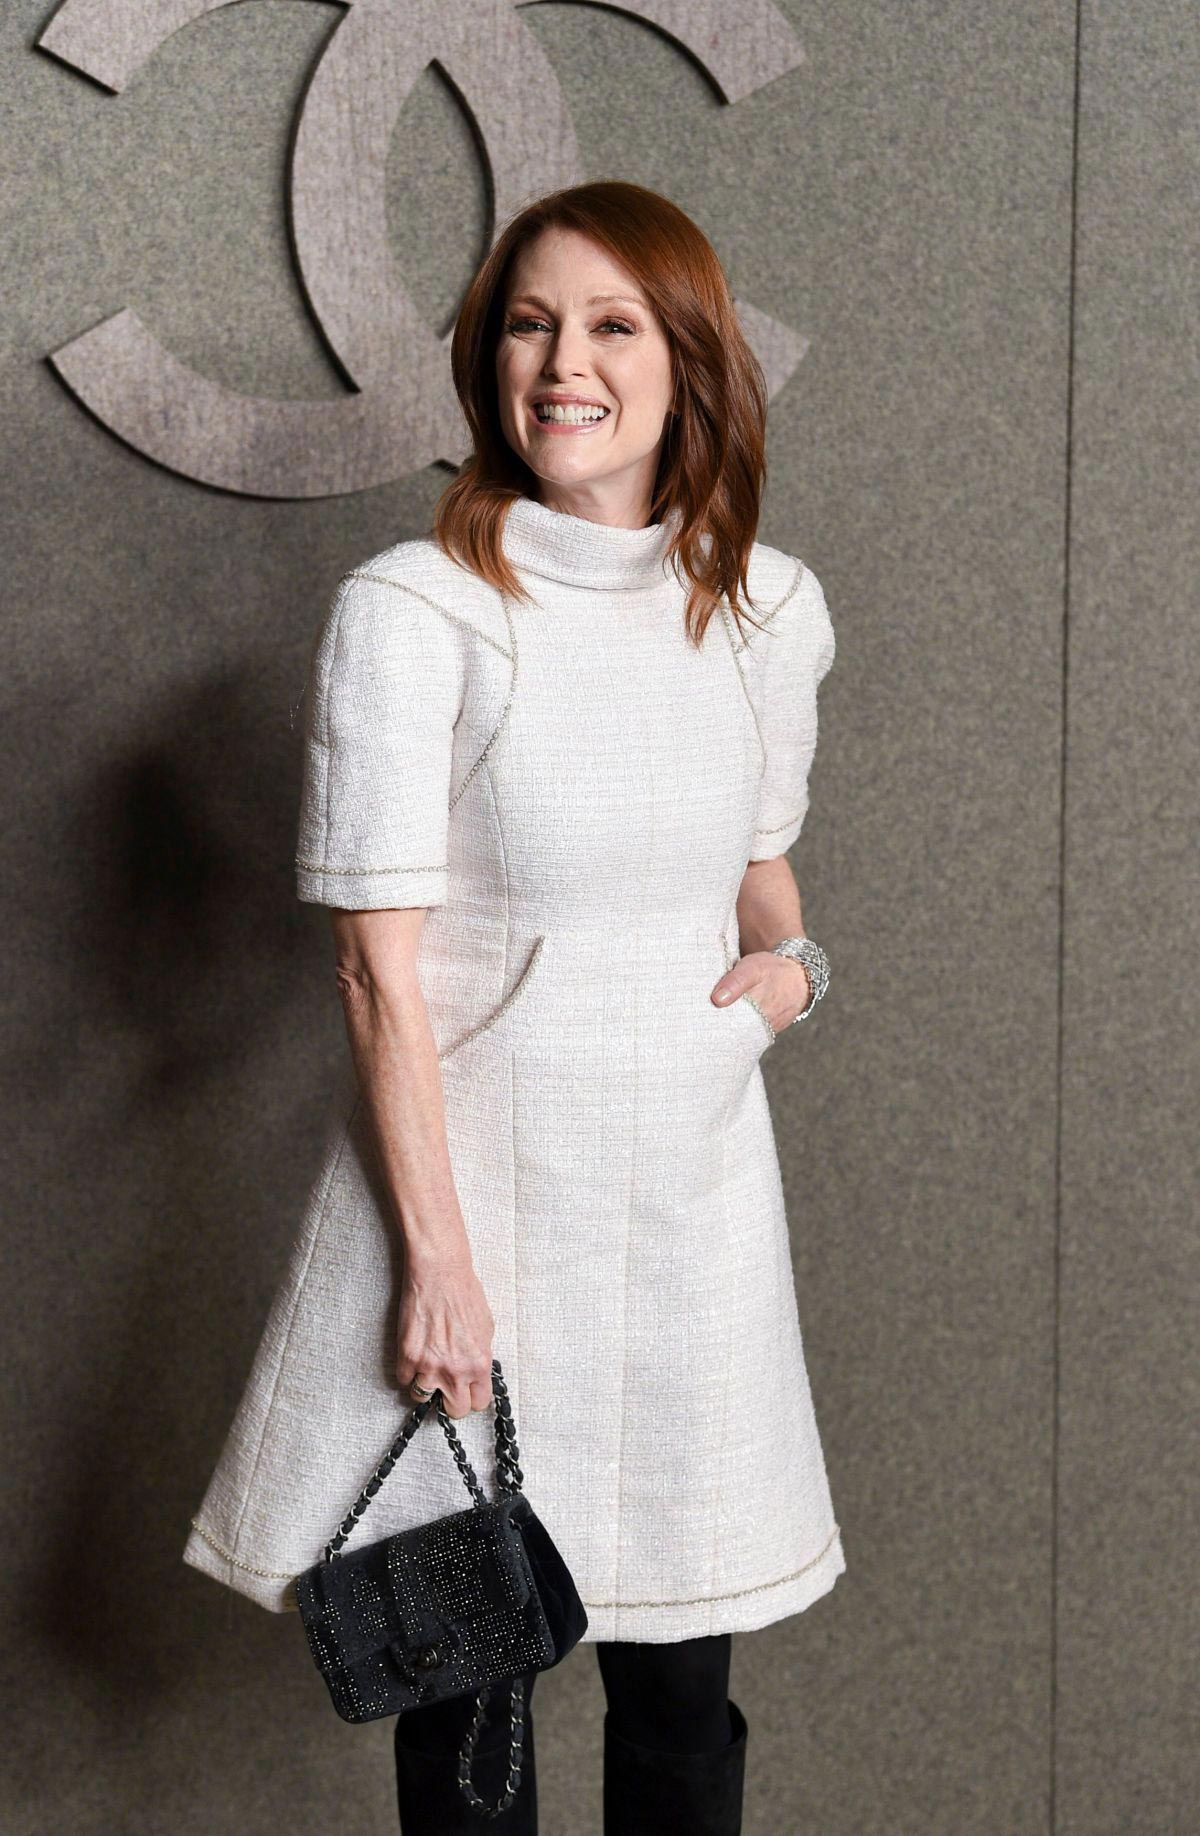 Julianne Moore at Chanel Metiers D'Art Show Pre-fall 2019 in New York 2018/12/04 1